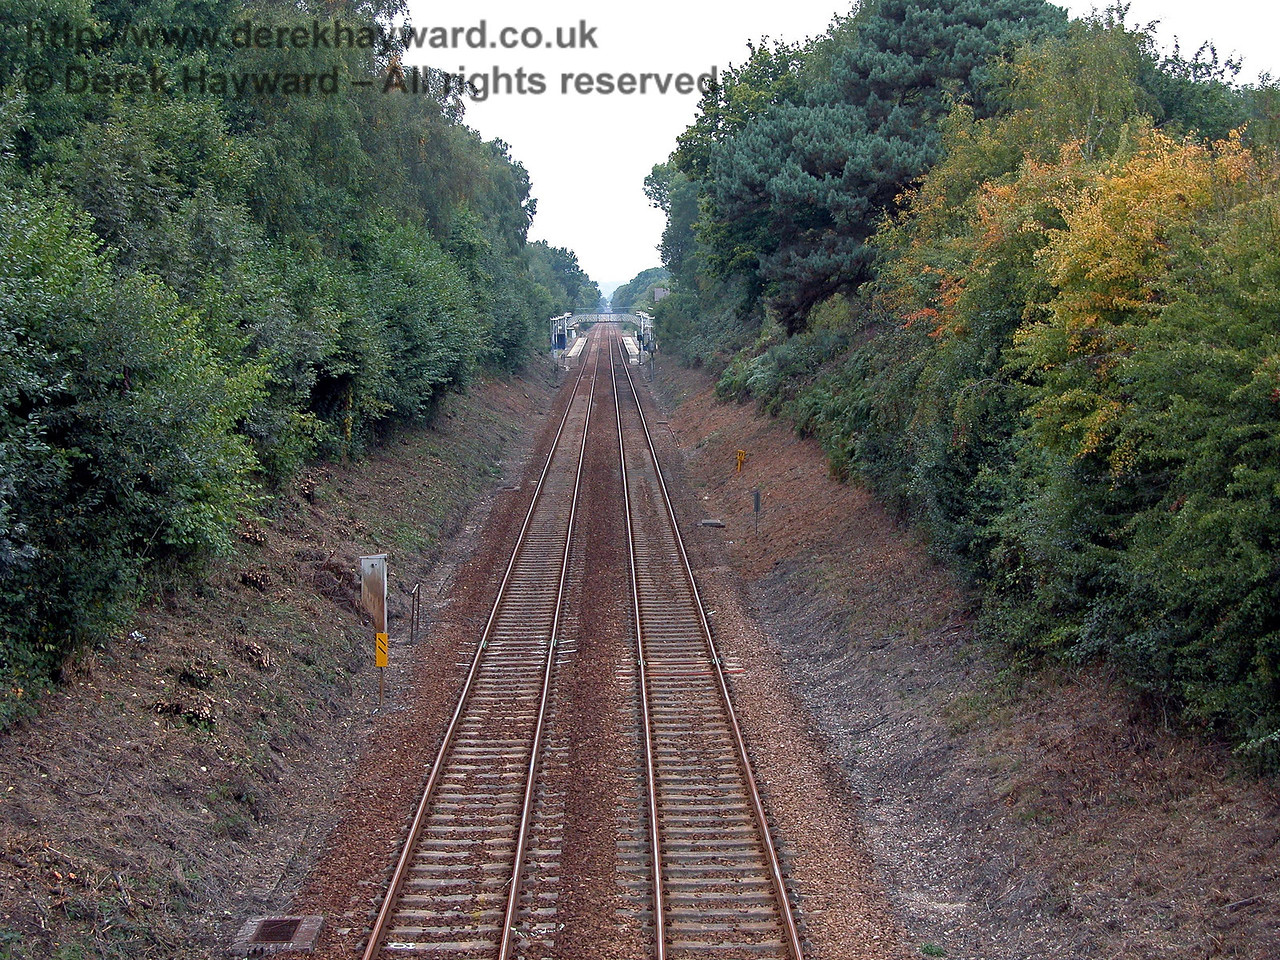 Looking north back towards Hever station from the bridge seen in the distance in the previous photograph. 18.09.2003